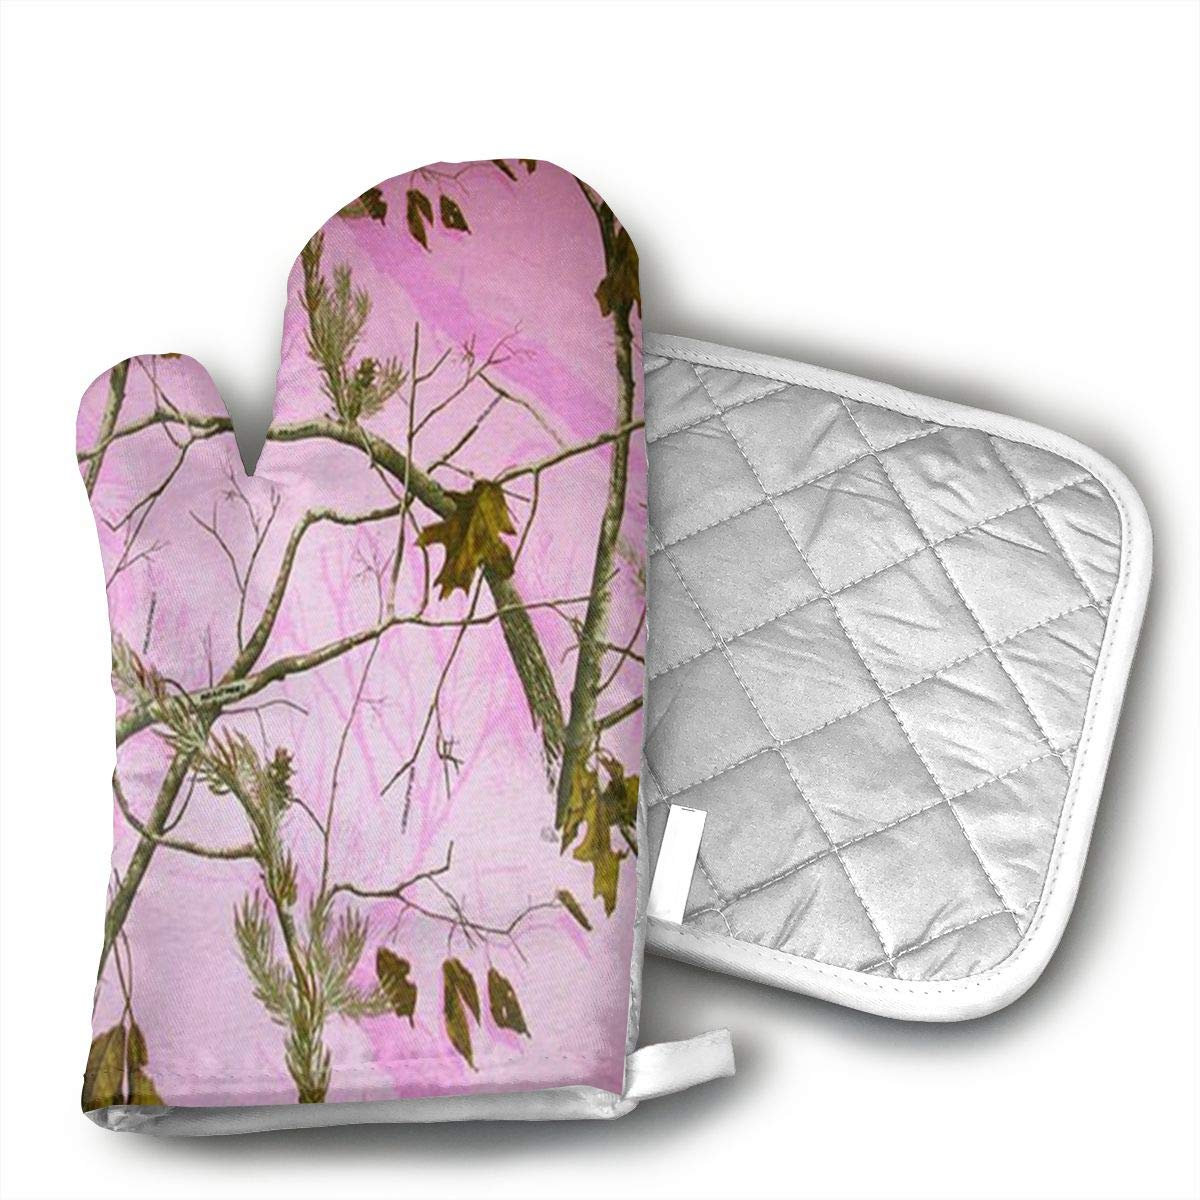 UYRHFS Pink Realtree Camo Oven Mitts and Pot Holder Kitchen Set with, Heat Resistant, Oven Gloves and Pot Holders 2pcs Set for BBQ Cooking Baking